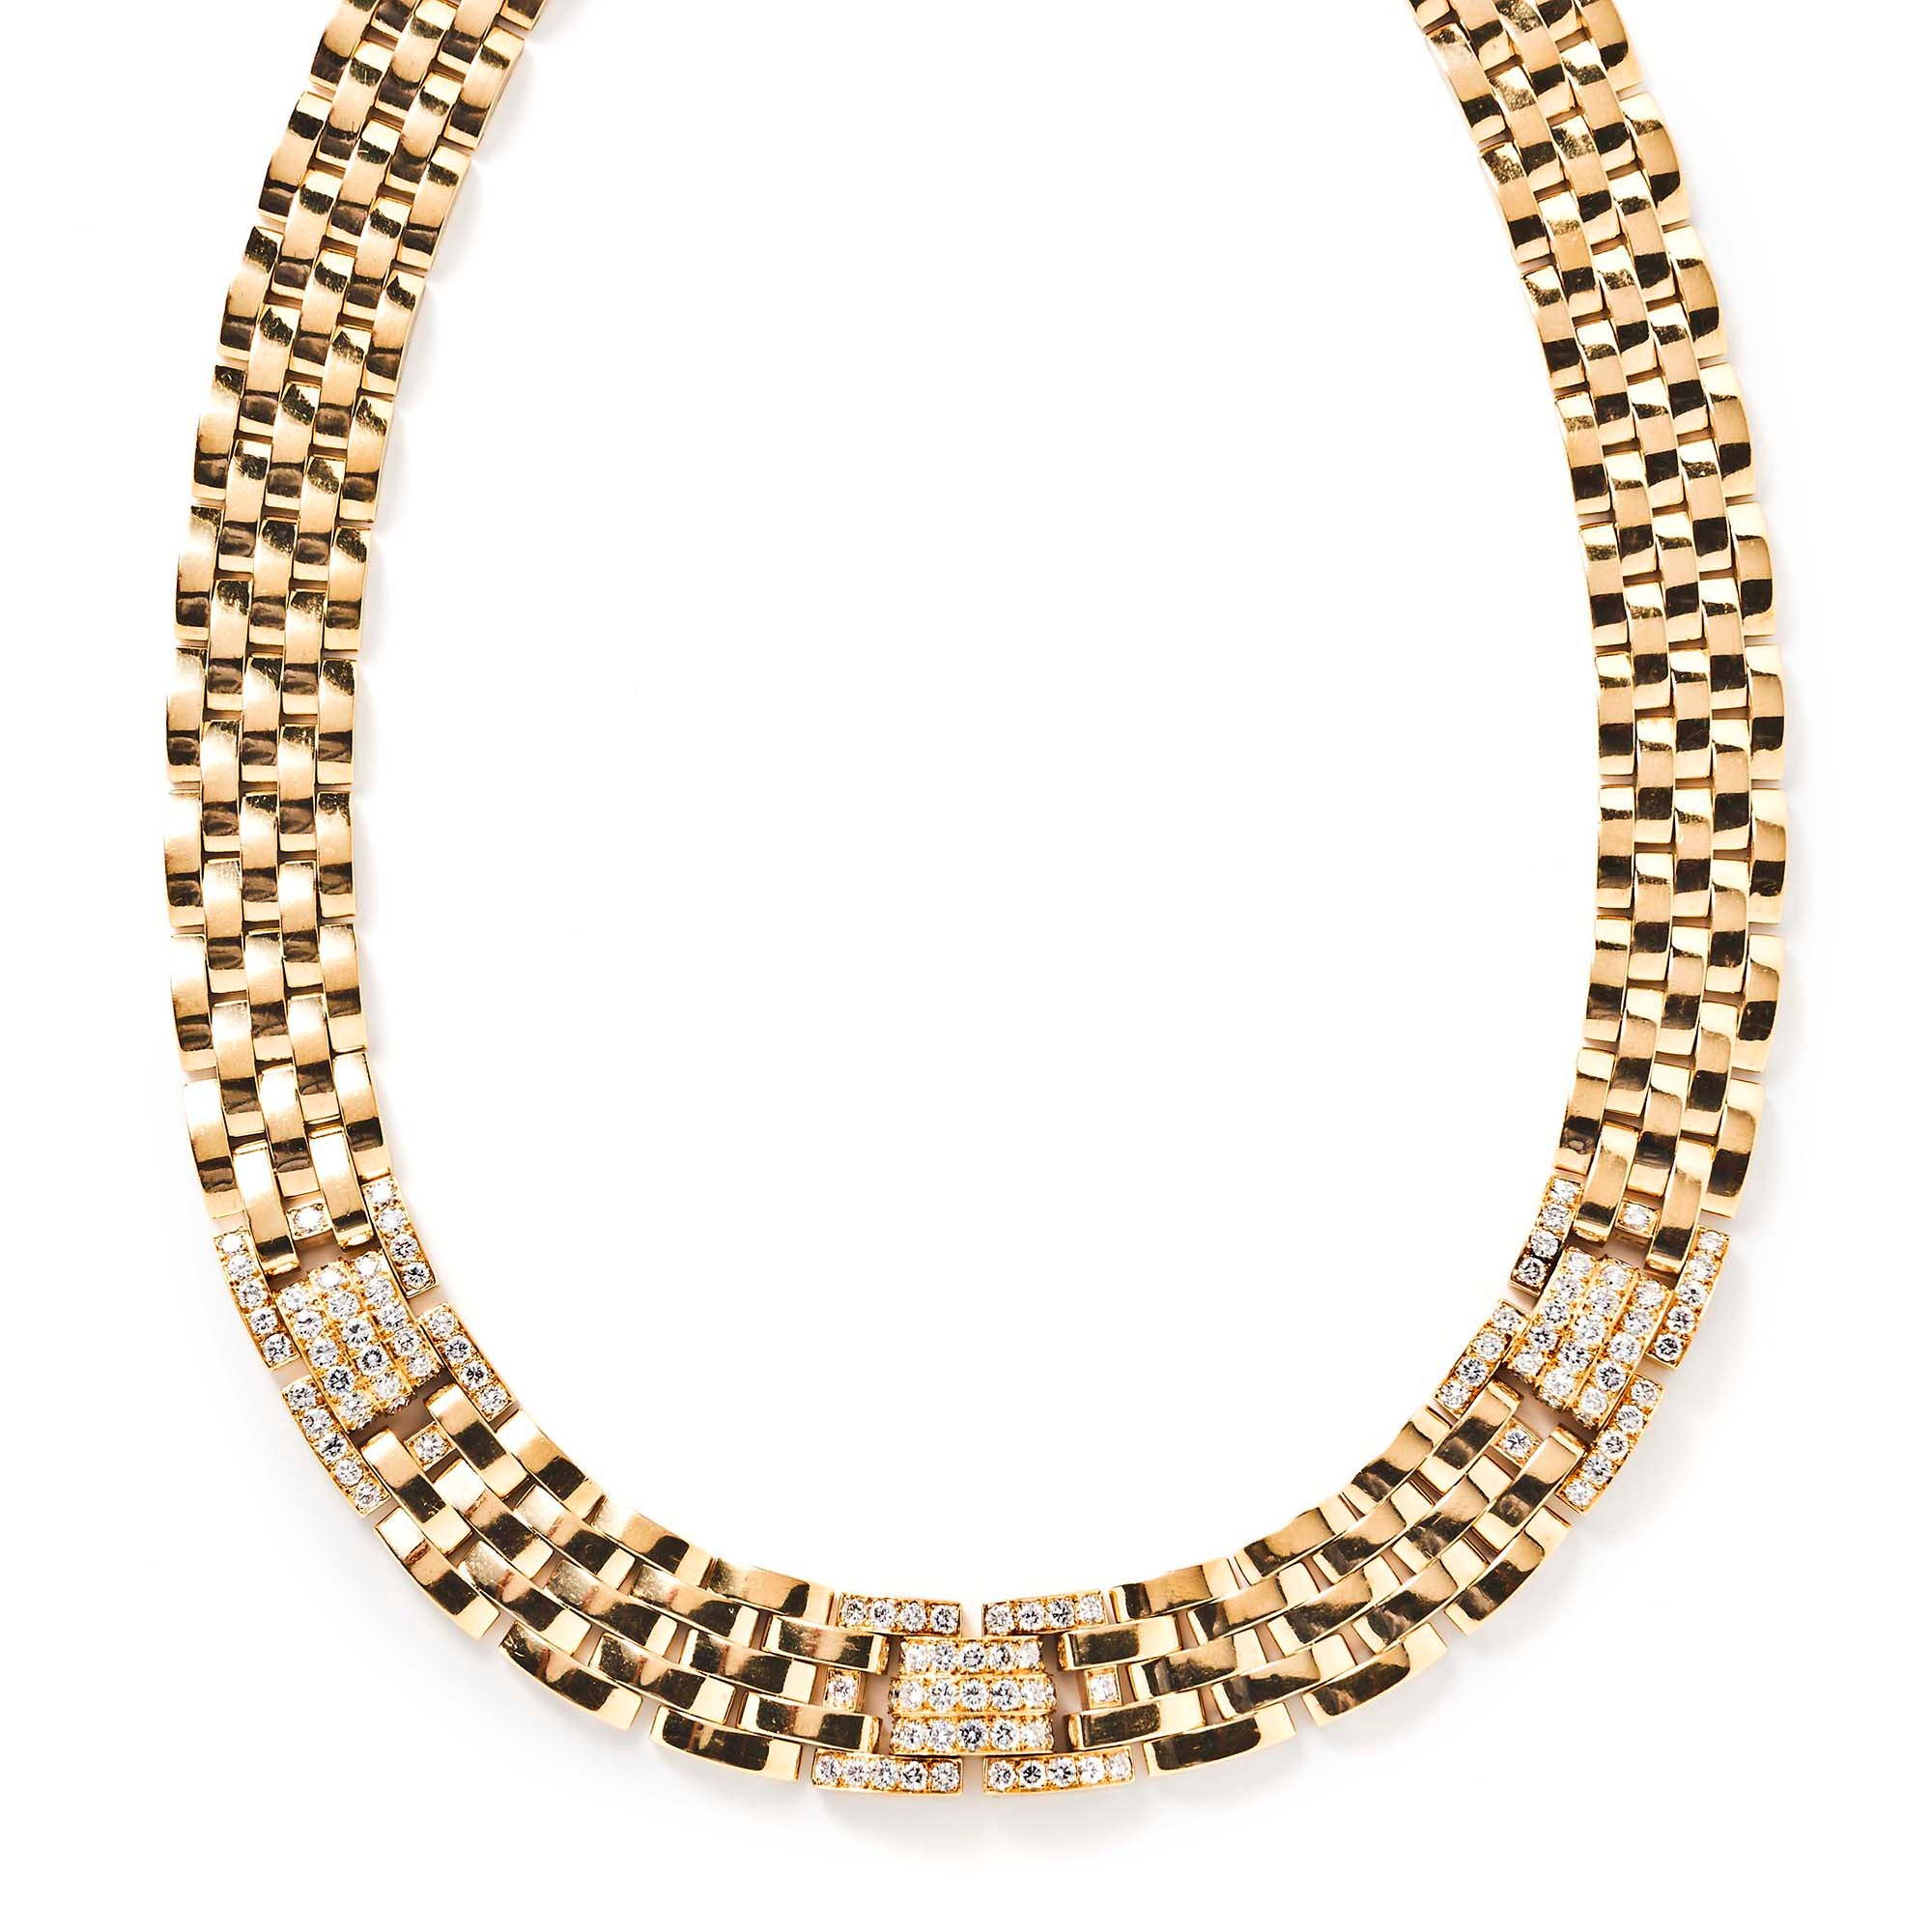 Cartier Maillon Panthère 18k Yellow Gold and Diamond 5 Row Necklace